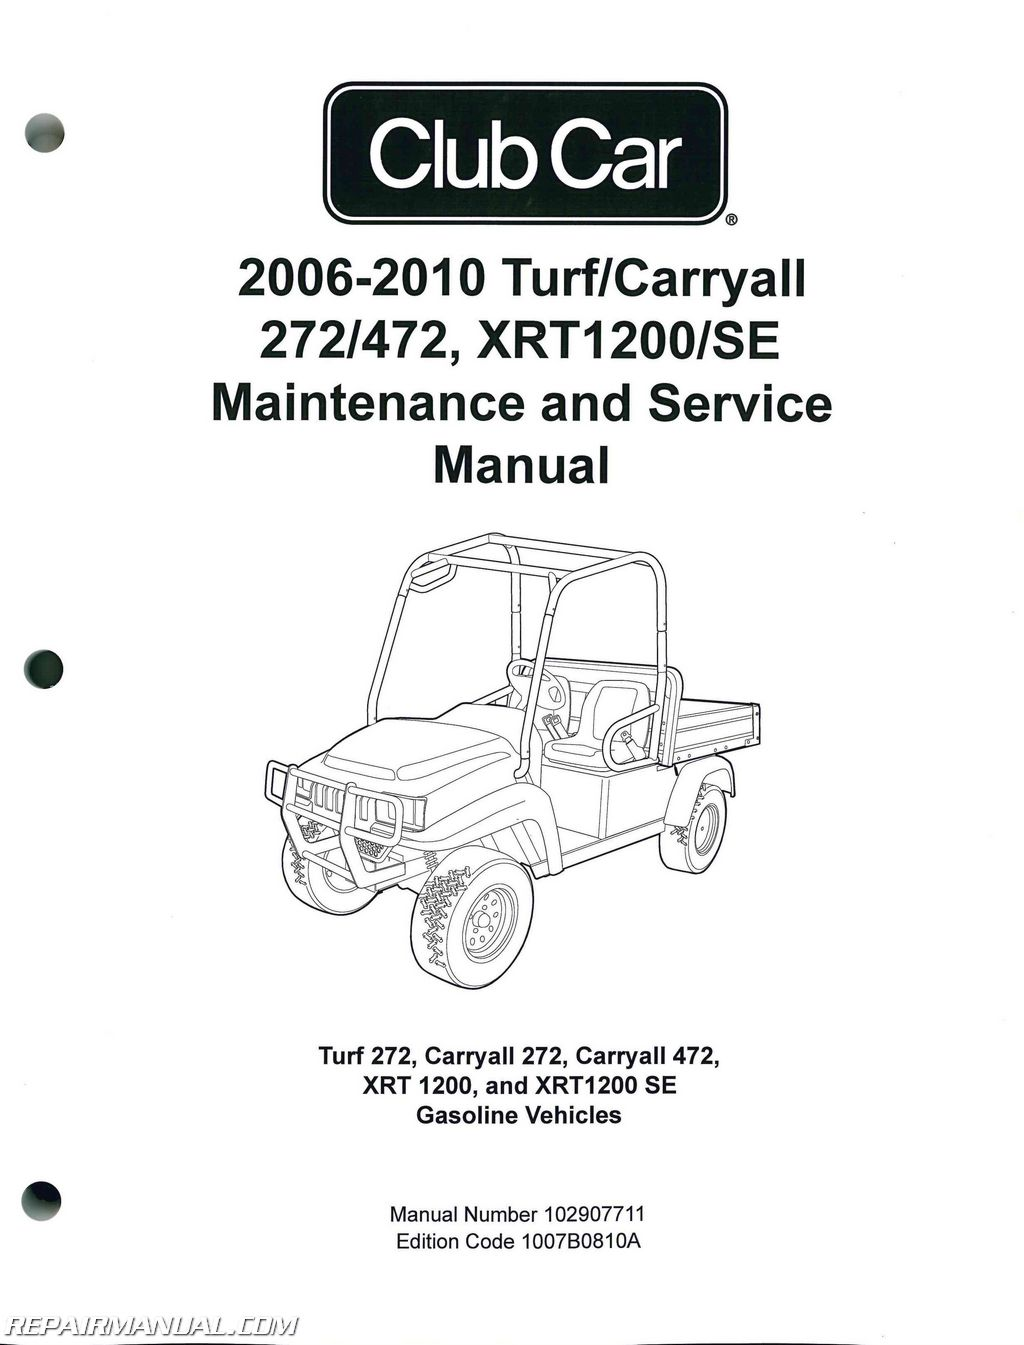 1995 club car manual various owner manual guide u2022 rh justk co Car Manual Pages club car user manual